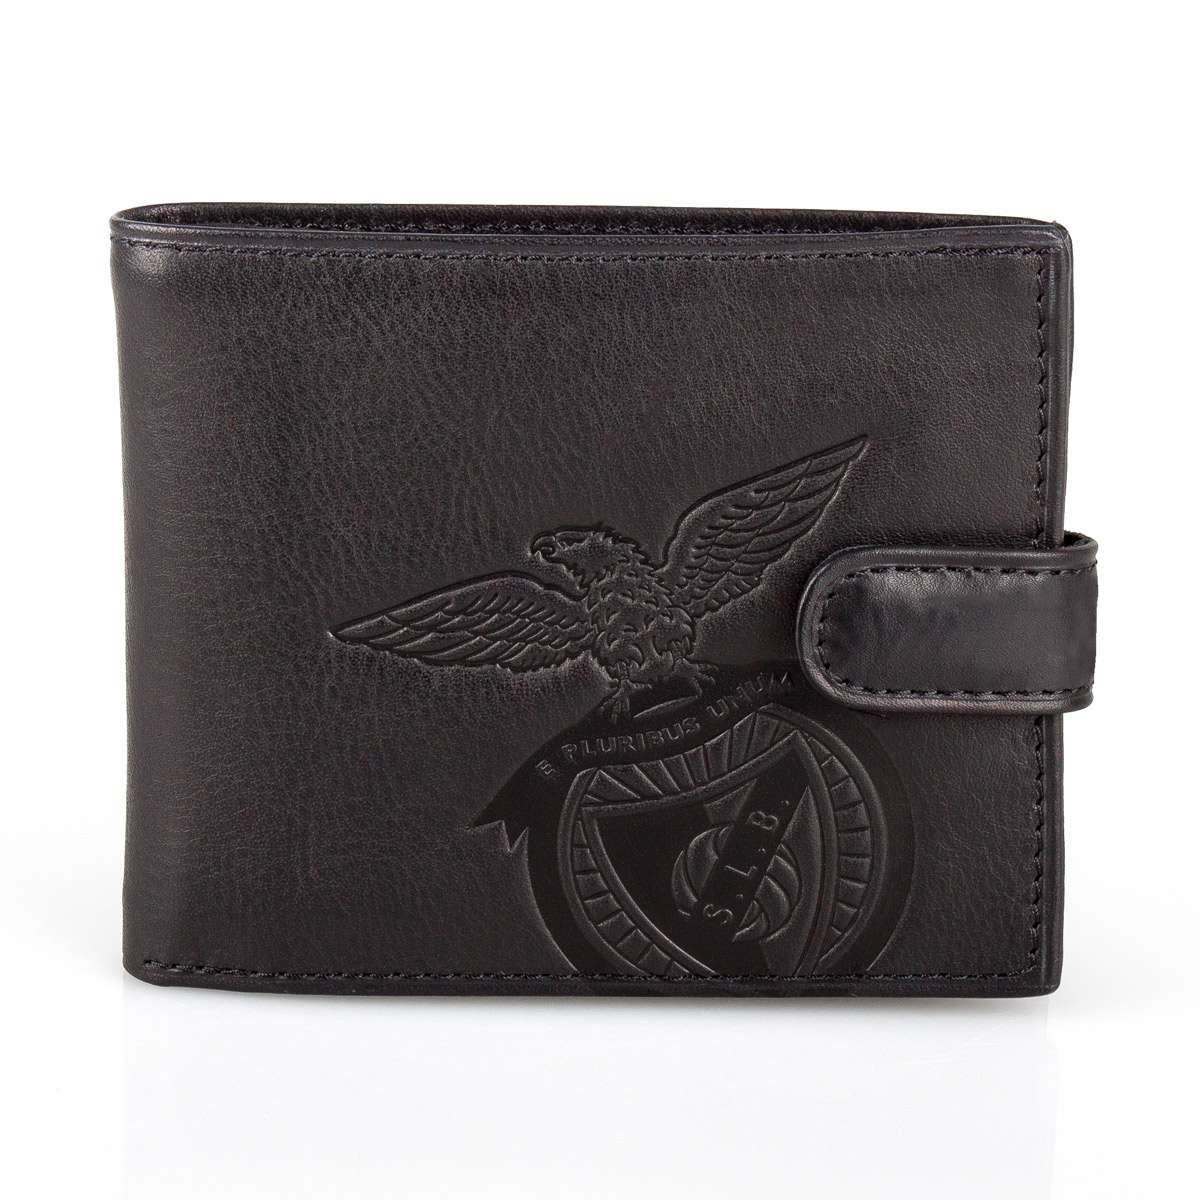 Leather Wallet Tab S.L. BENFICA Black – image 2